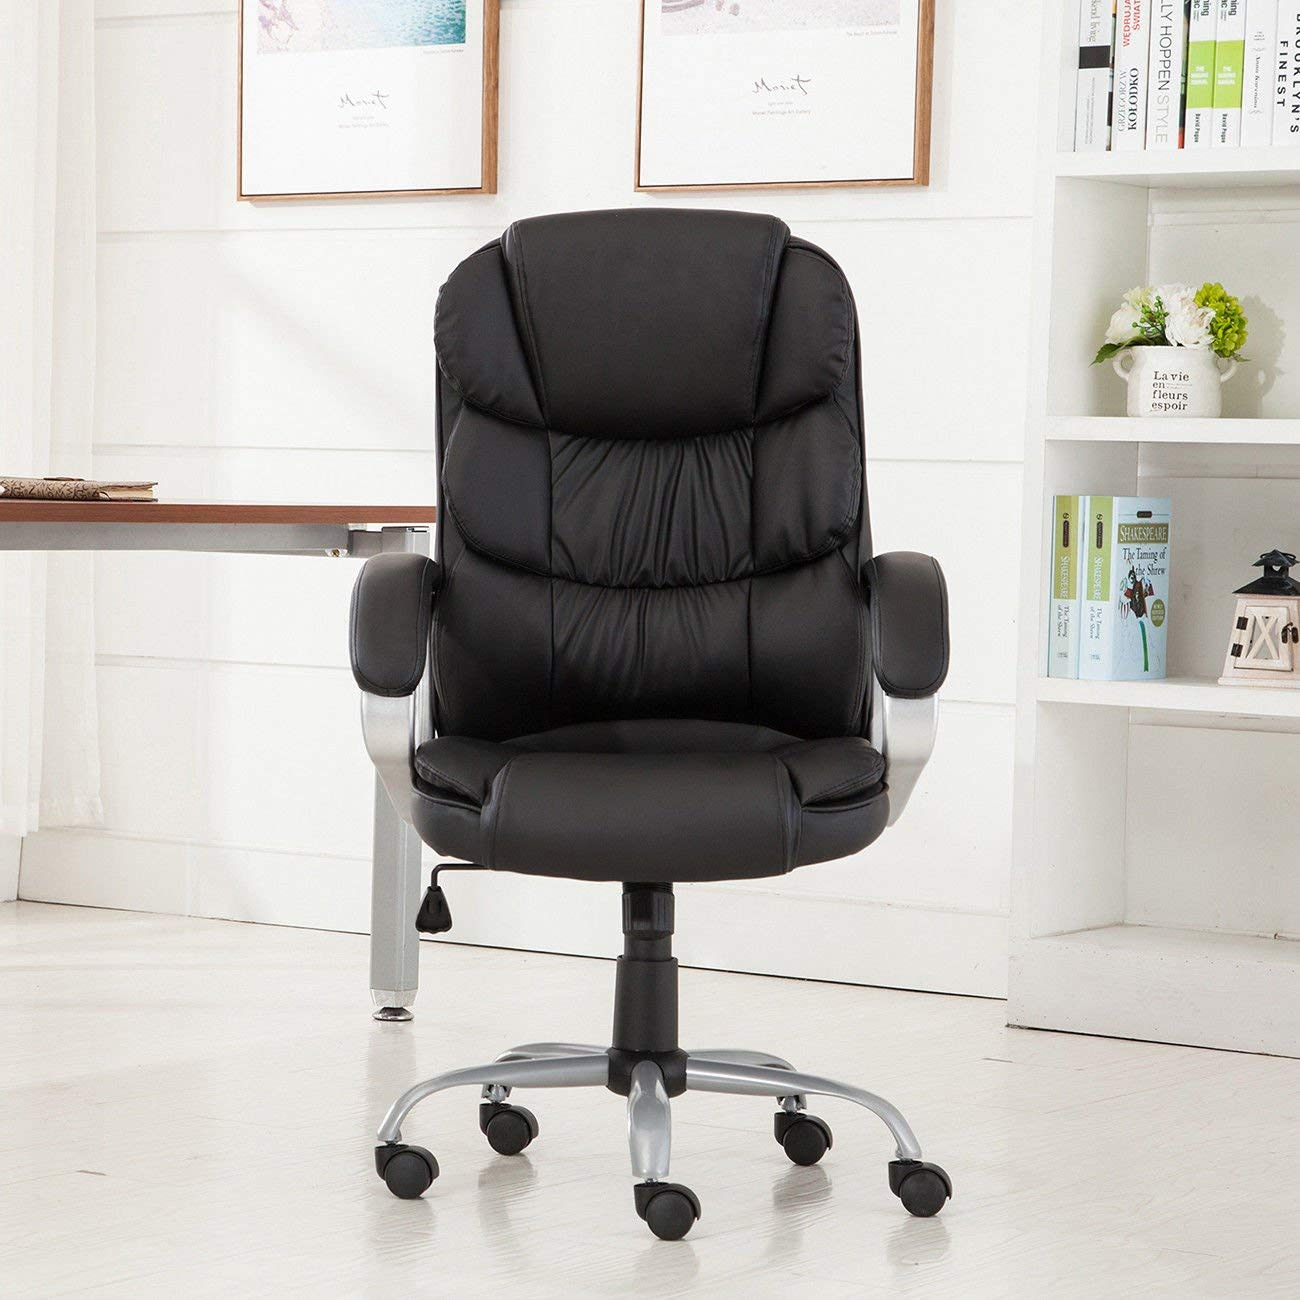 "GHP 24""x24""x43"" 330-Lbs Capacity Black PU Leather High Back Executive Office Chair"